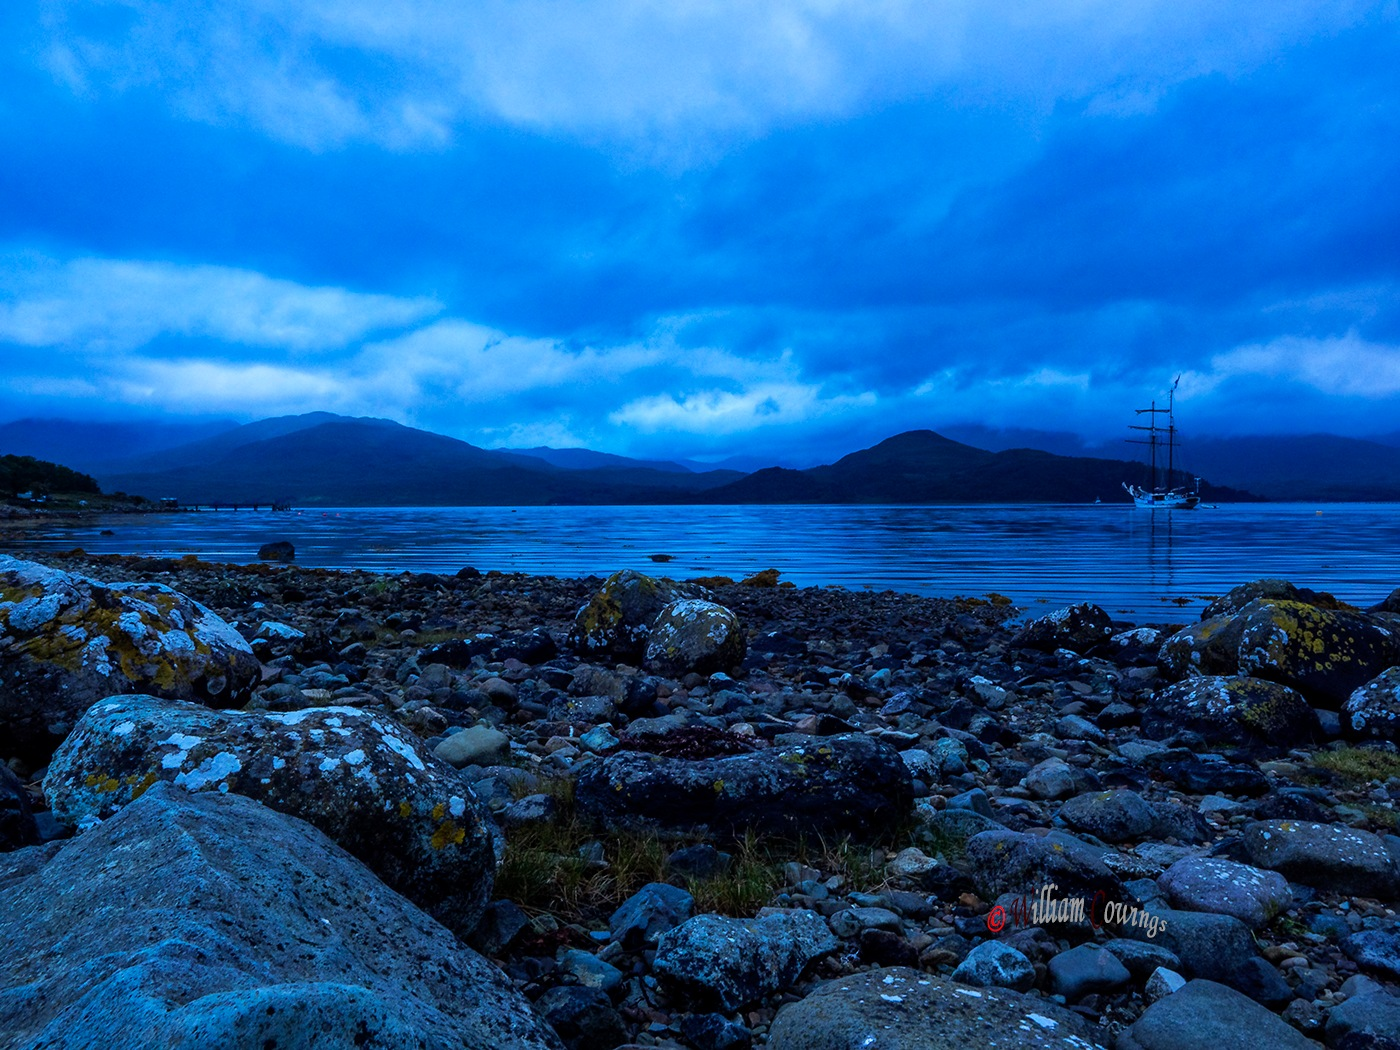 Dawn at Loch Spelve by williamcowings